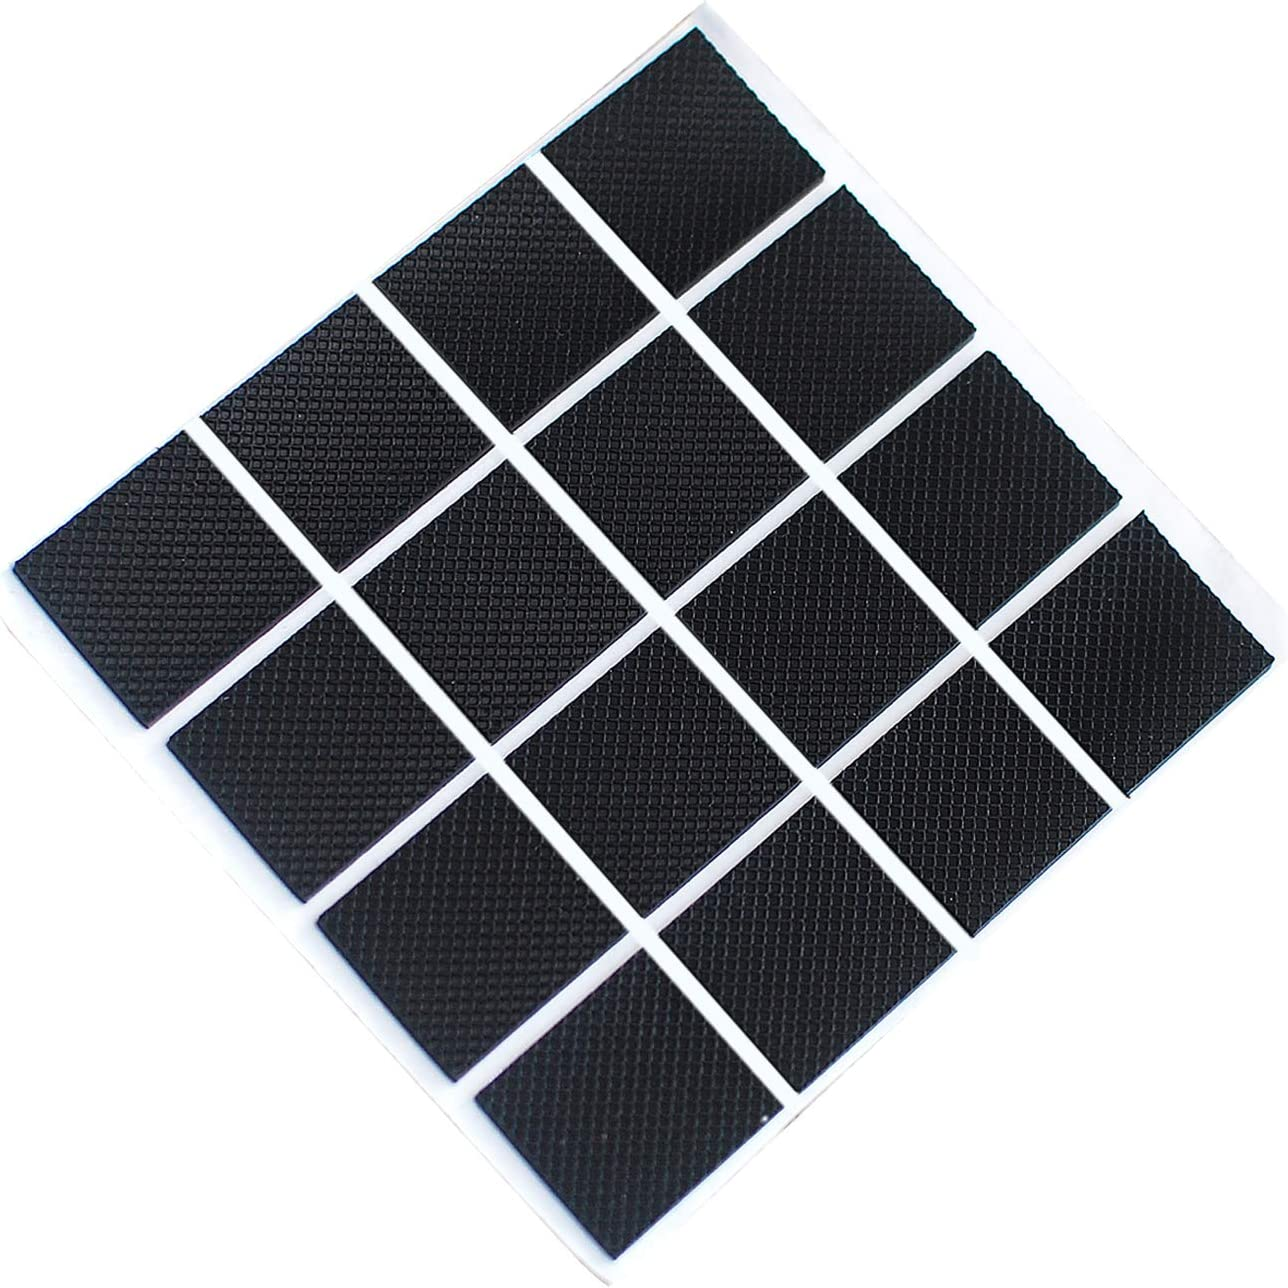 Furniture Pads Anti Slip Furniture Pads Grippers Self Adhesive Rubber Pads Floor Protector for Furniture Stopper on Hardwood Wood Floor,16 Pack,Black (1 inch, Black Square)